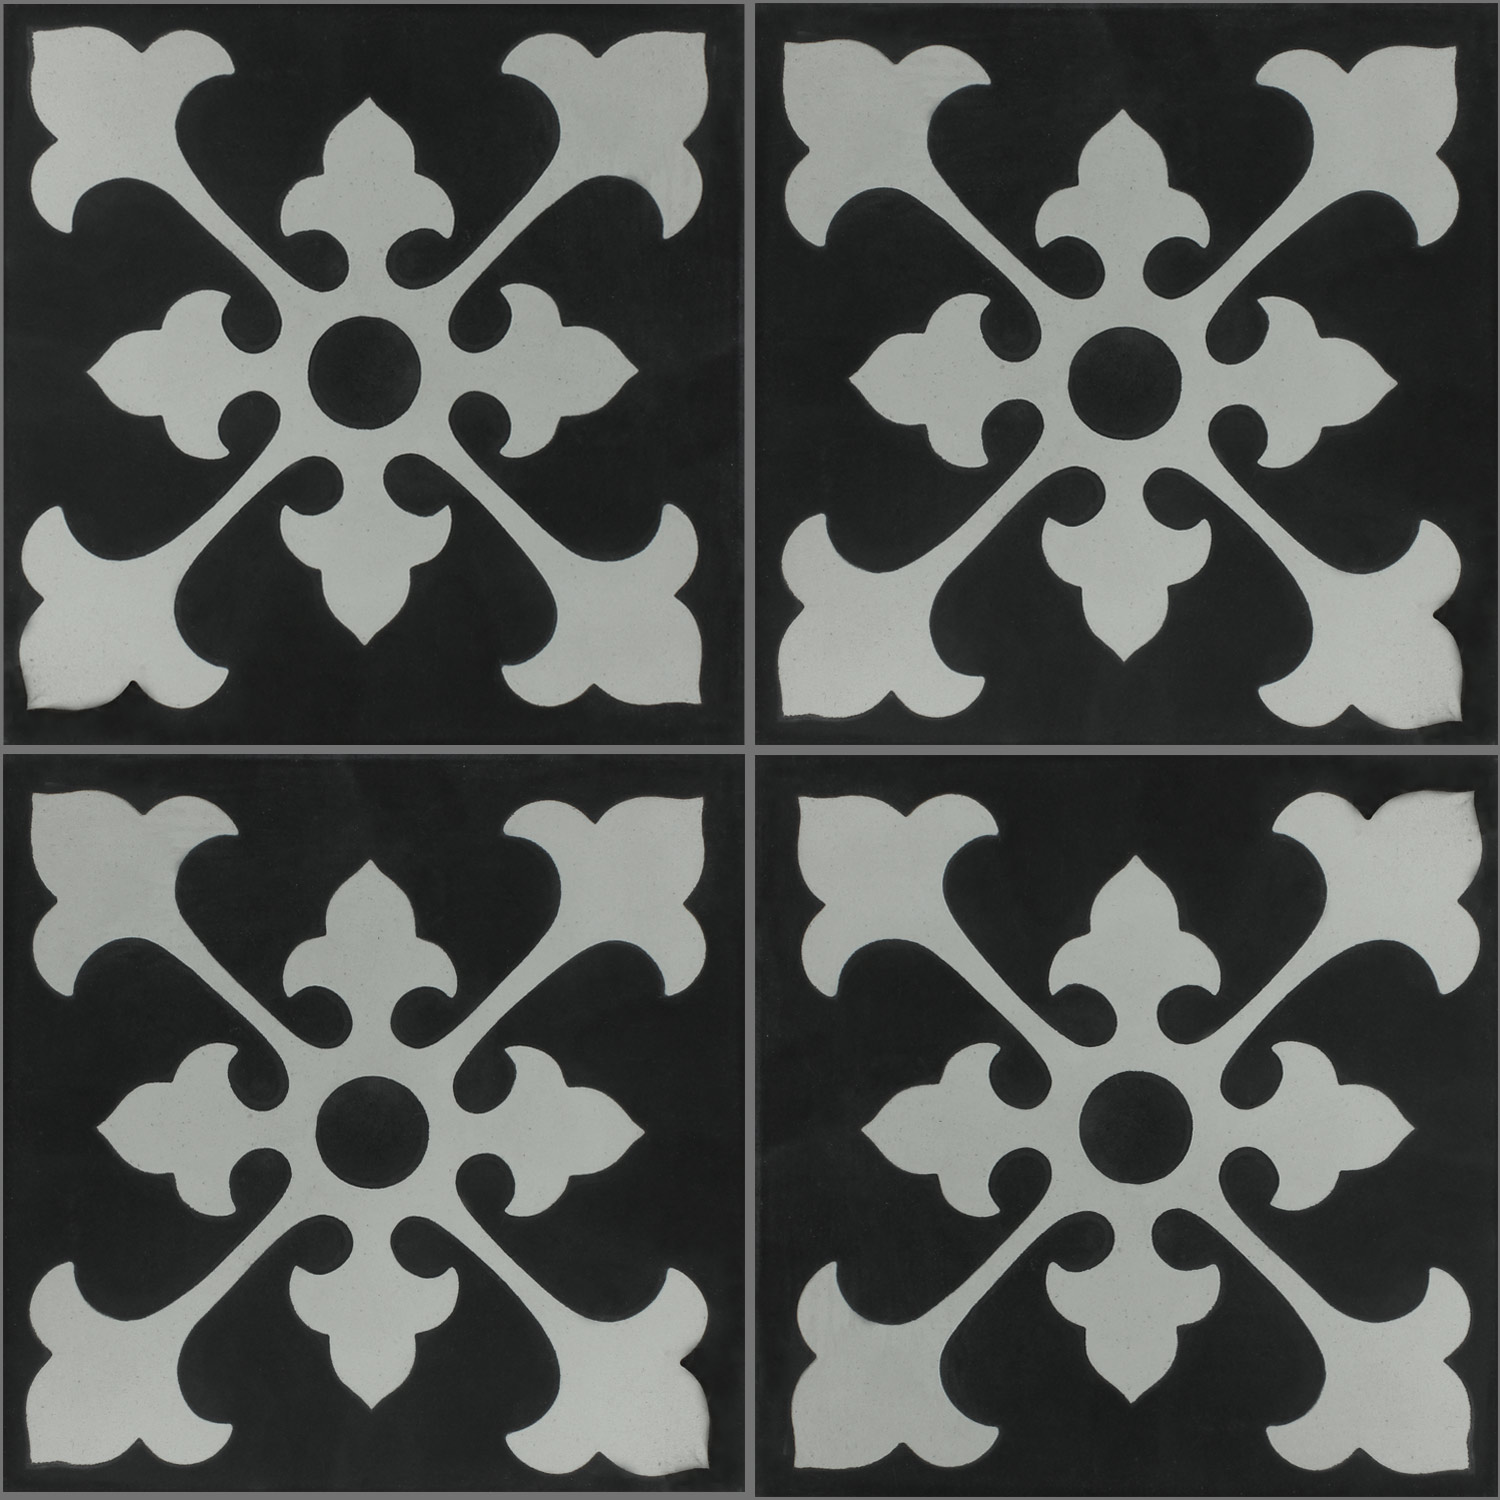 Cement Antique Tiles 20x20cm Ornament Black White Pl78198